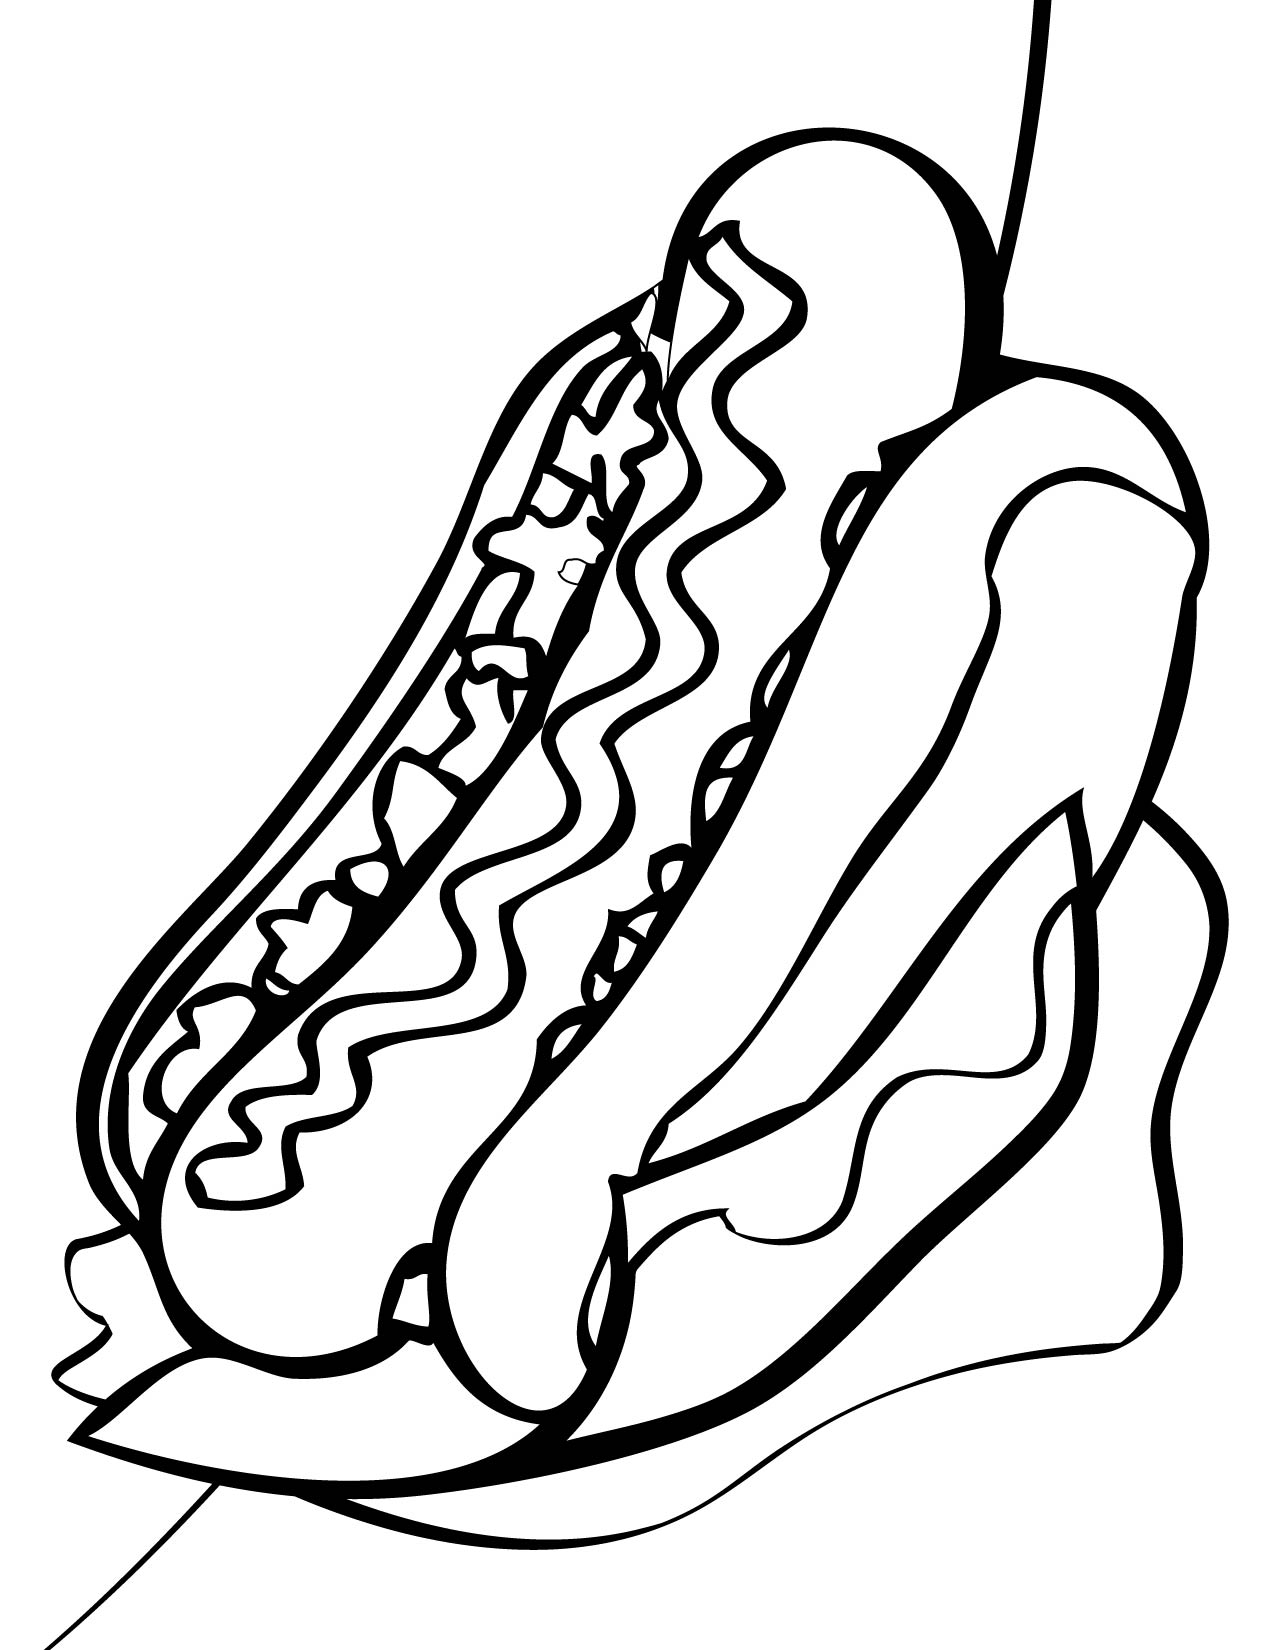 coloring pages for hot dogs photo - 1